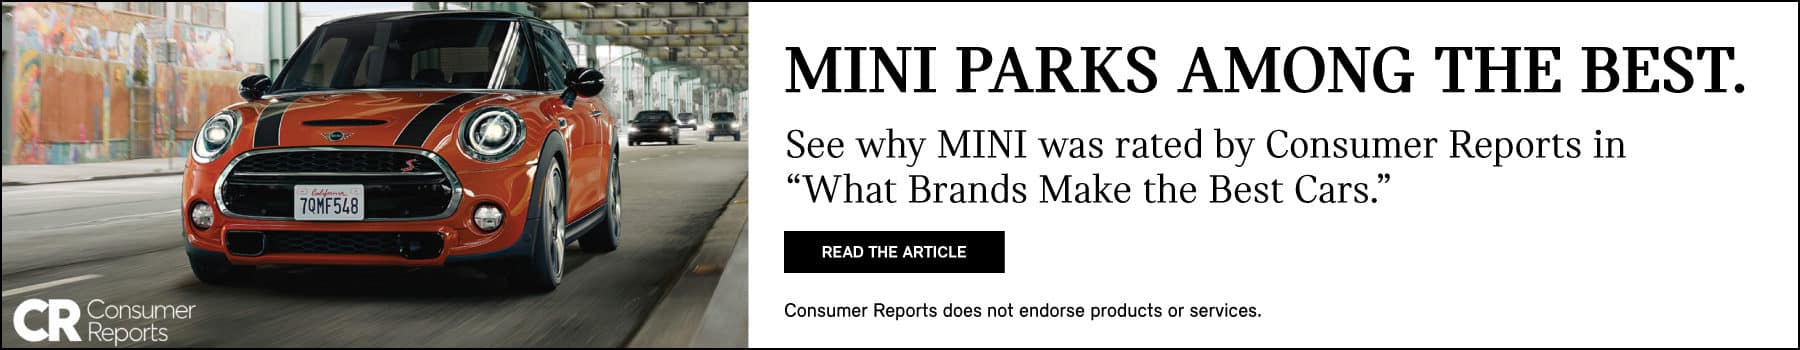 MINI PARKS AMONG THE BEST. SEE WHY MINI WAS RATED BY CONSUMER REPORTS IN WHAT BRANDS MAKE THE BEST CARDS. READ THE ARTICLE. Consumer Reports does not endorse products or services